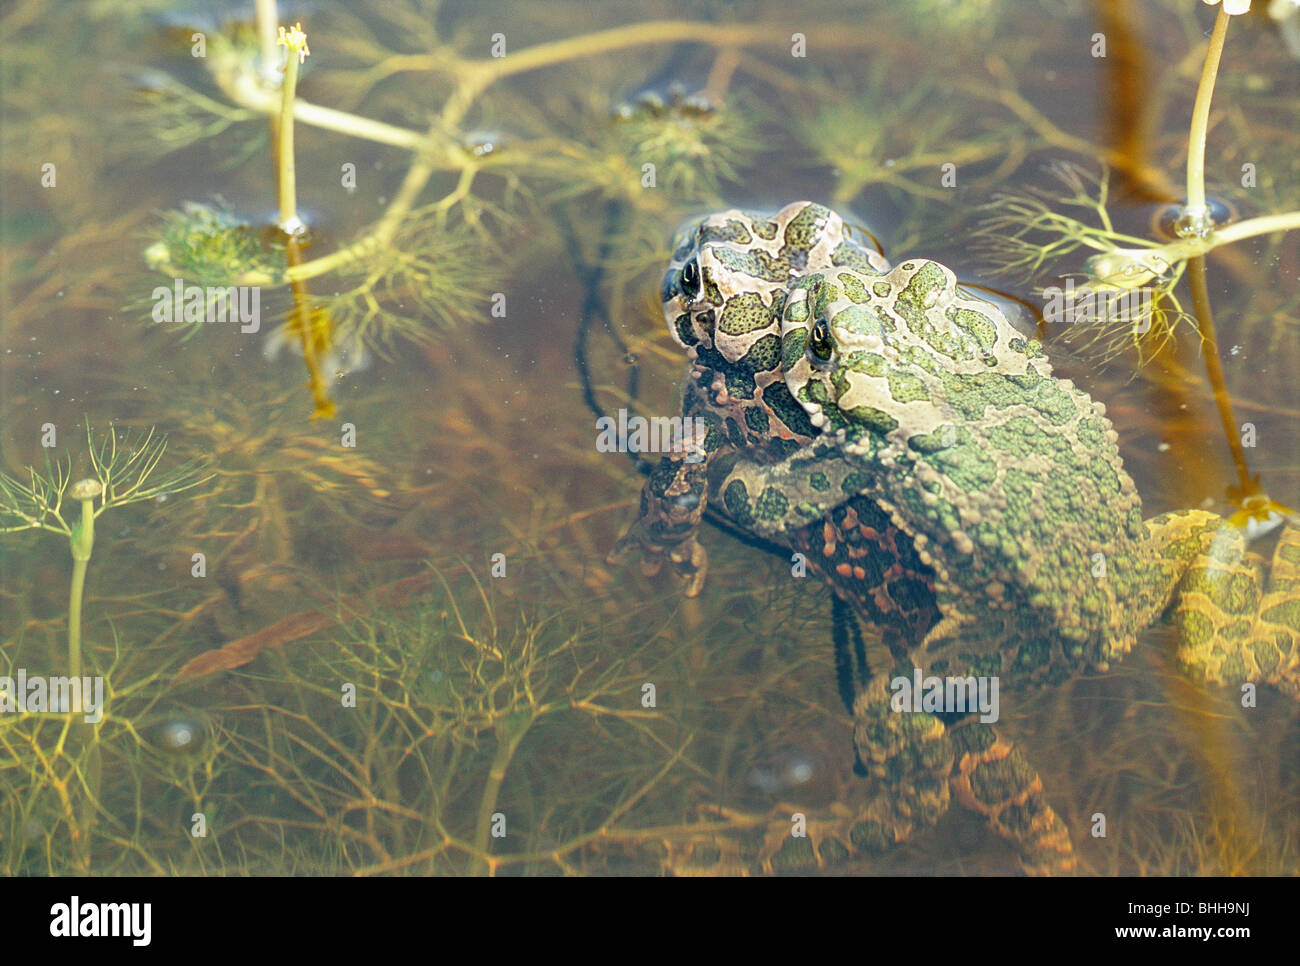 Mating scene with toads, Sweden. - Stock Image